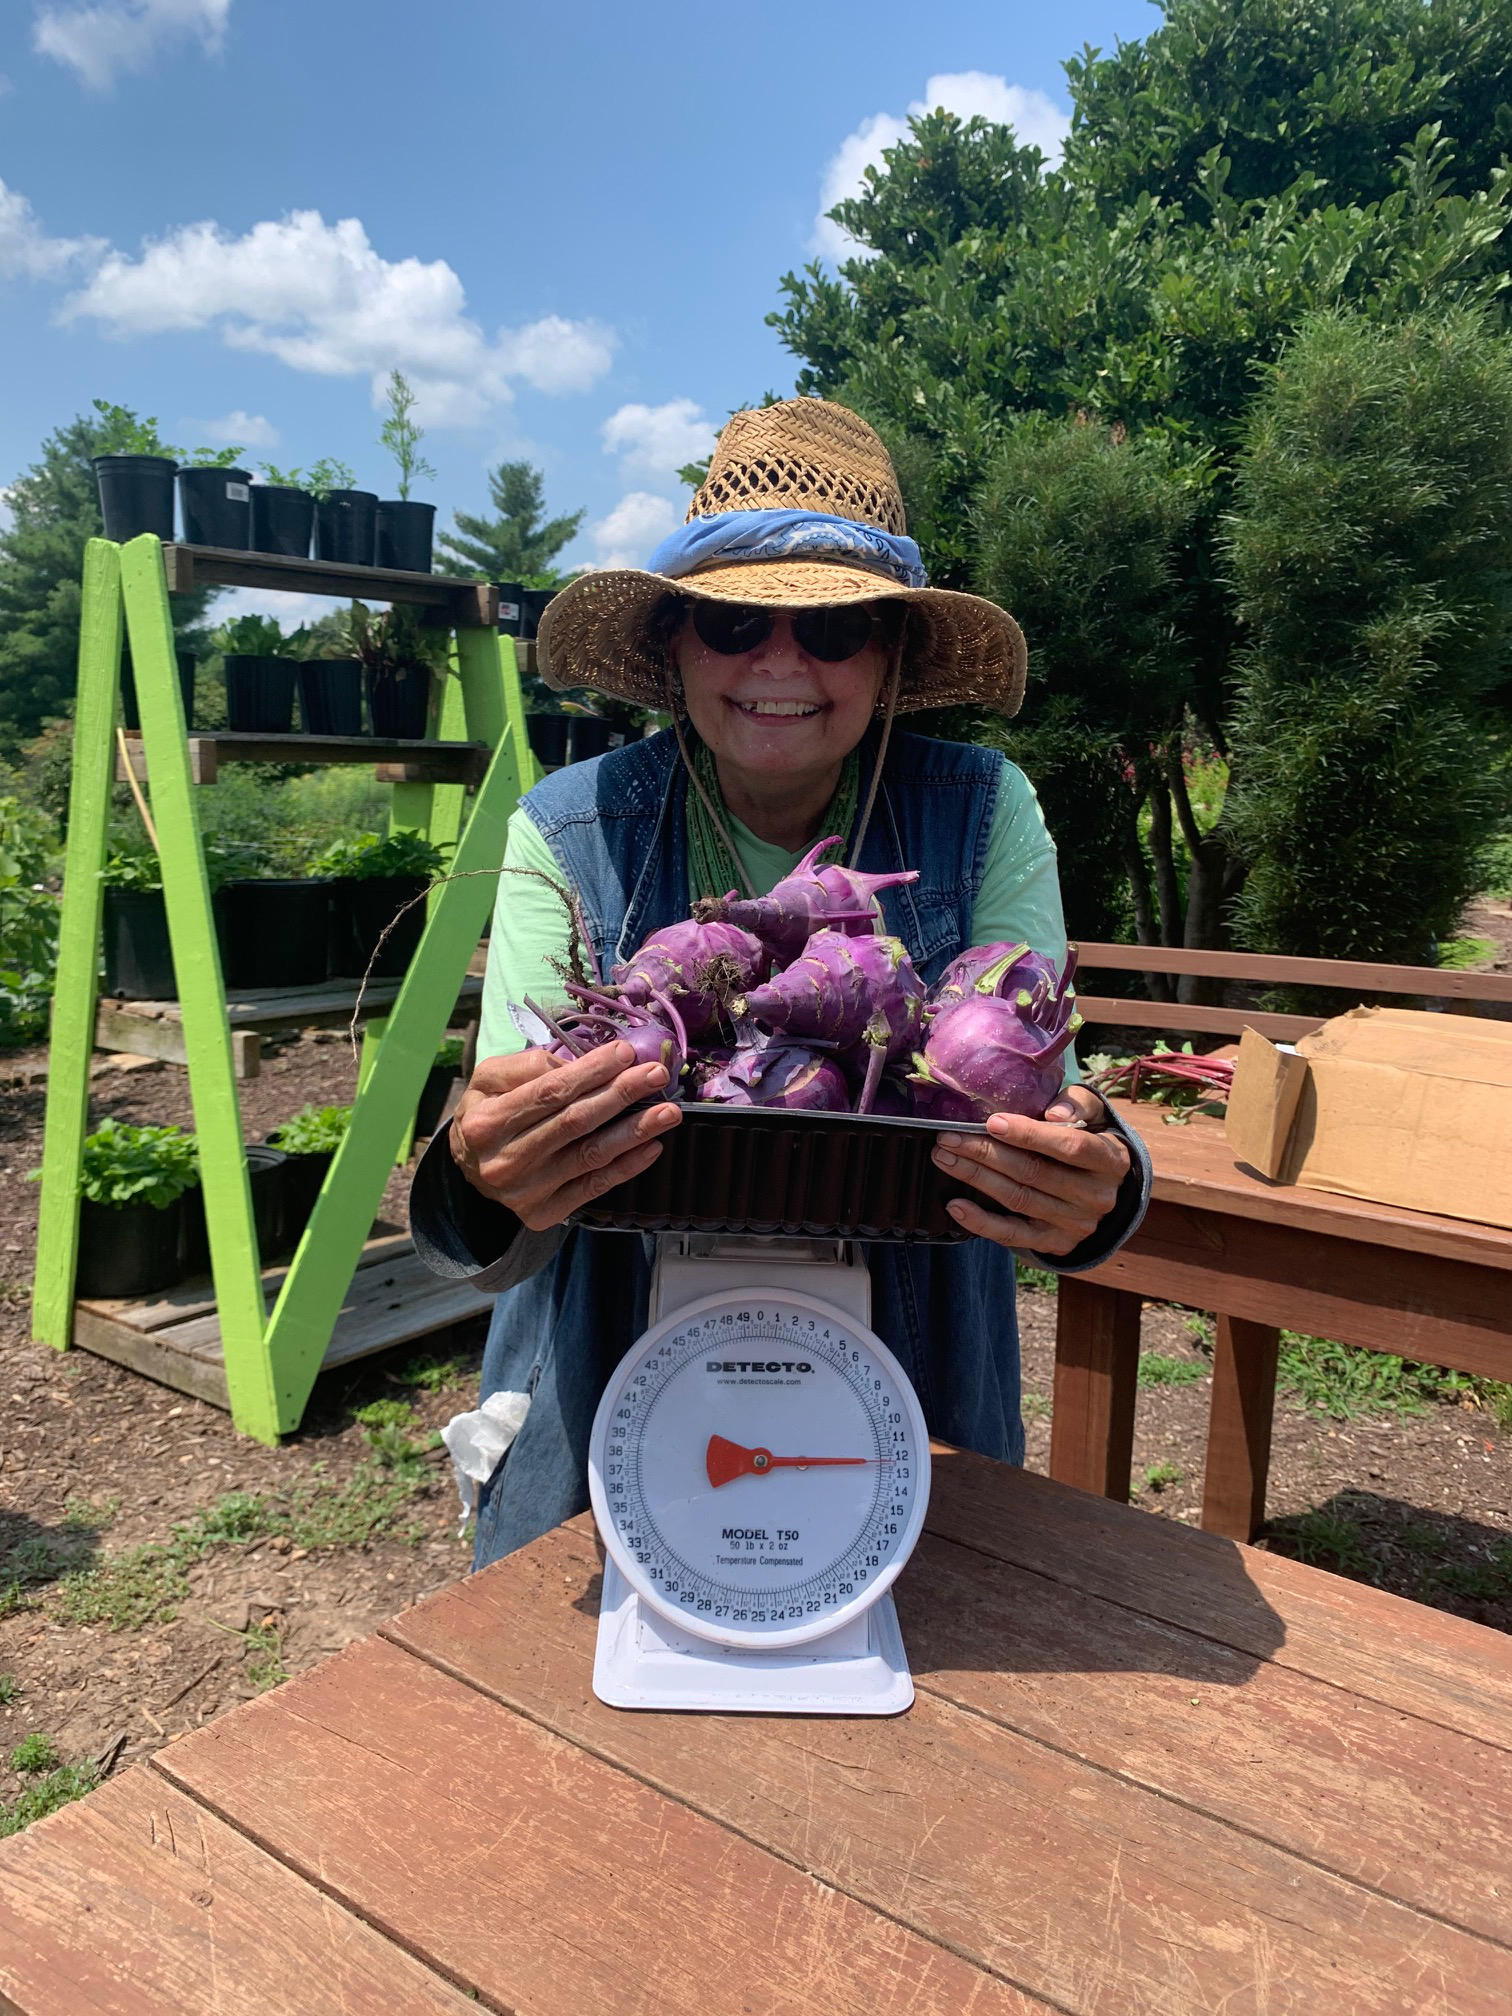 Maryfrances DiGirolamo with 12 pounds of kohlrabi harvested this past July. Photo provided by Kelly McGowan.